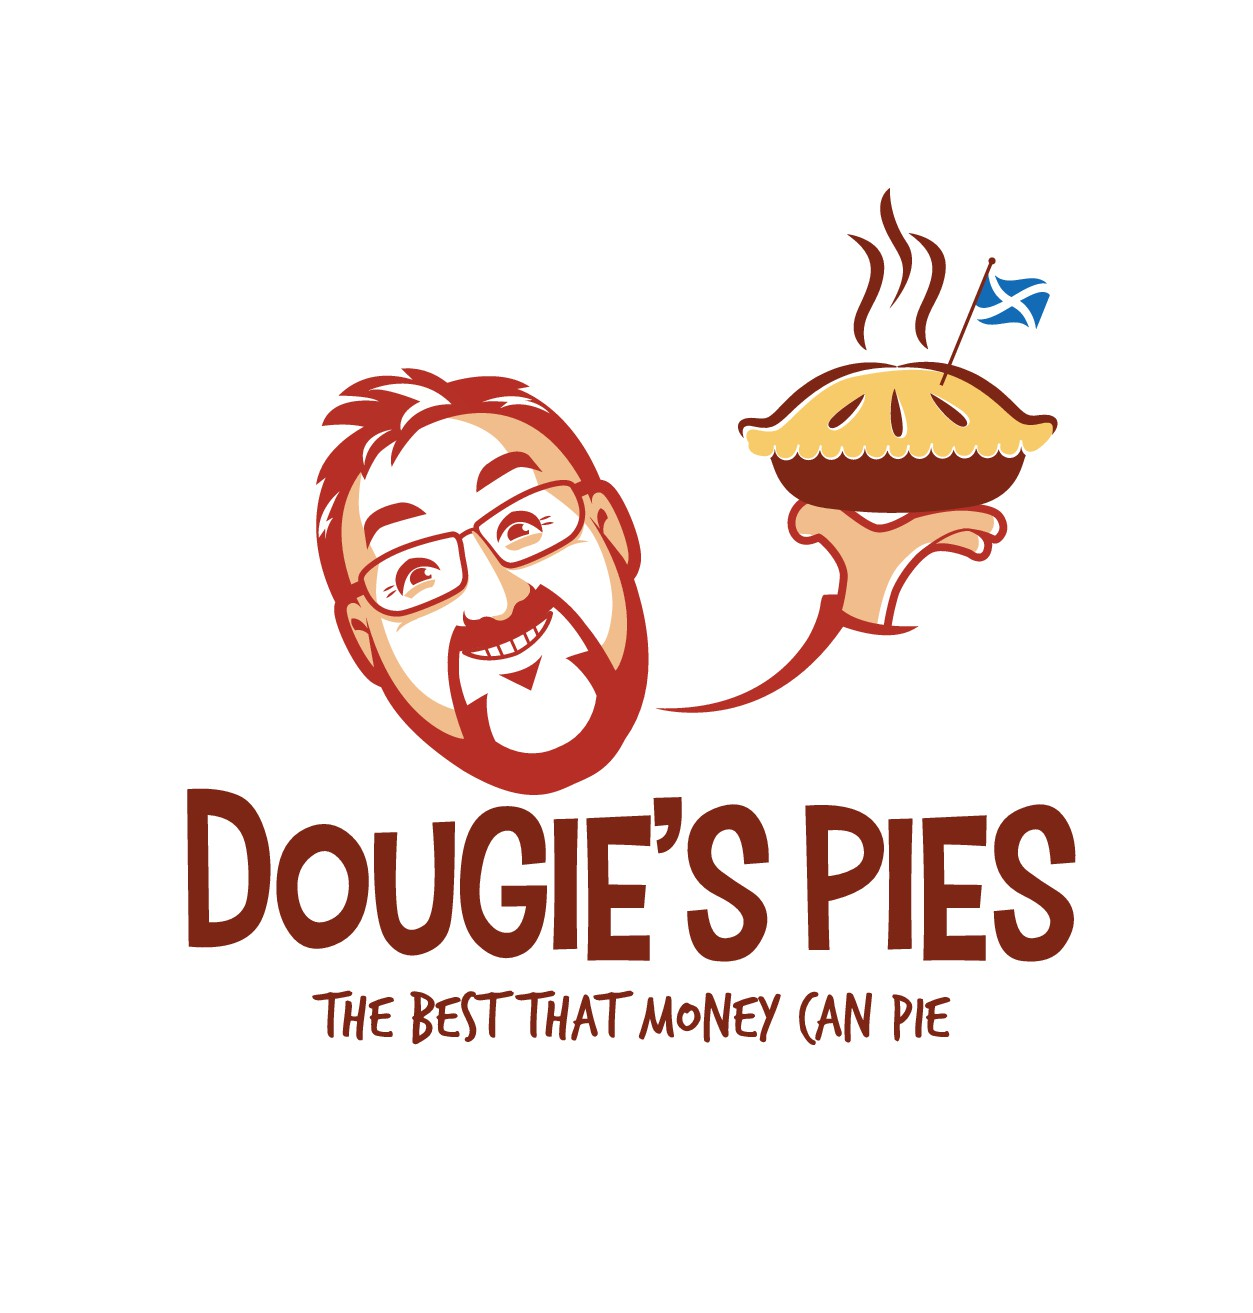 Design a clear, entertaining logo for Dougie's Pies (let's put the fun in funky!)